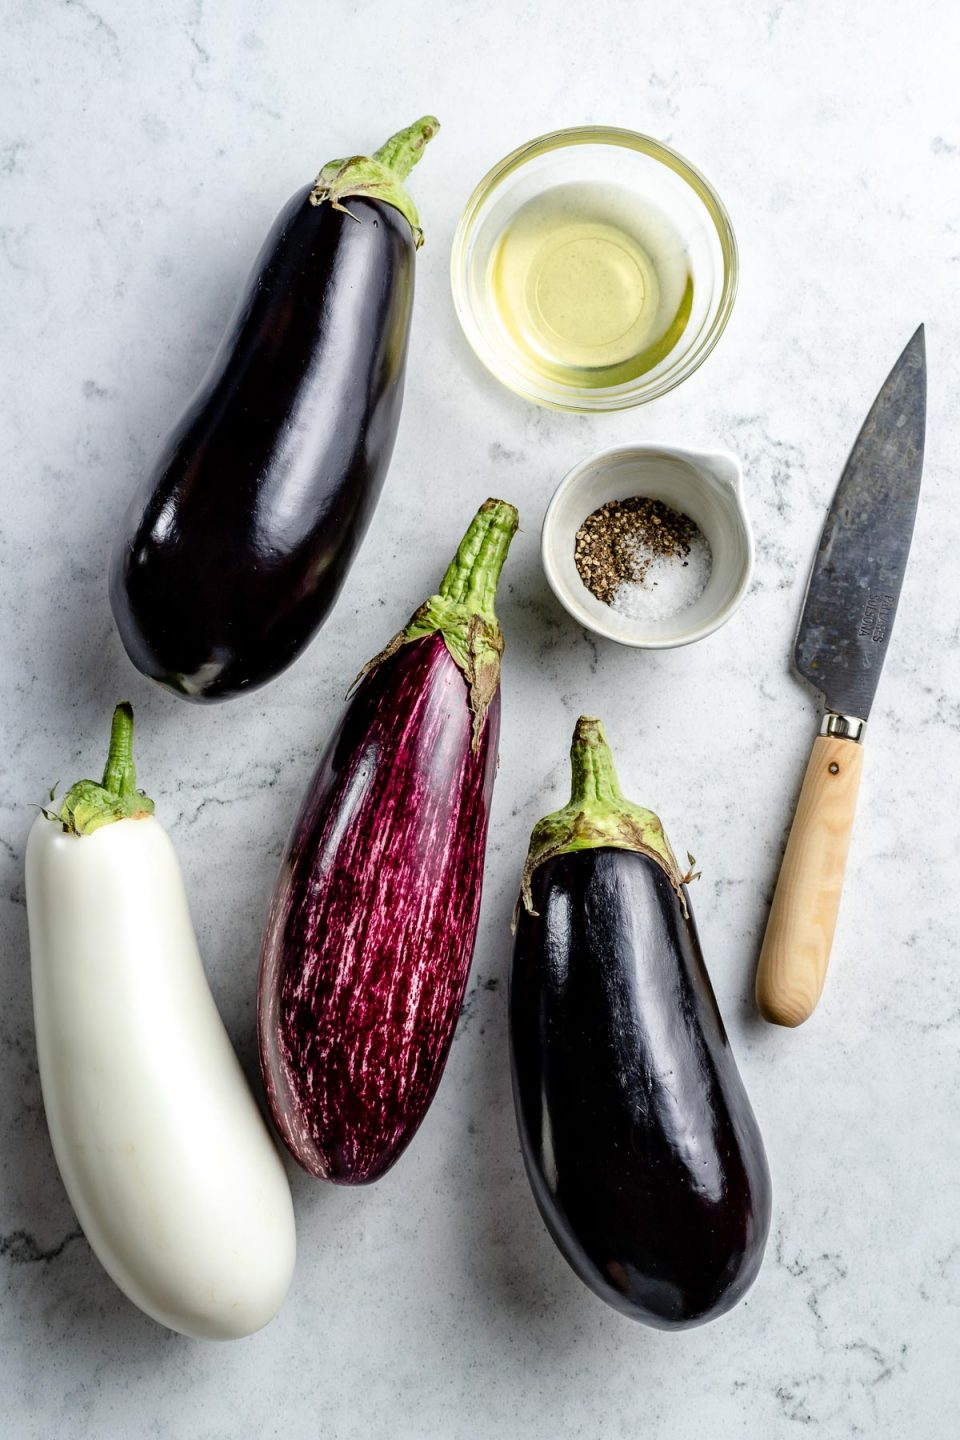 Grilled eggplant ingredients arranged on a white & grey marble surface - whole eggplant in a variety of colors, avocado oil, kosher salt, & ground black pepper. A pairing knife rests on the surface next to the ingredients.